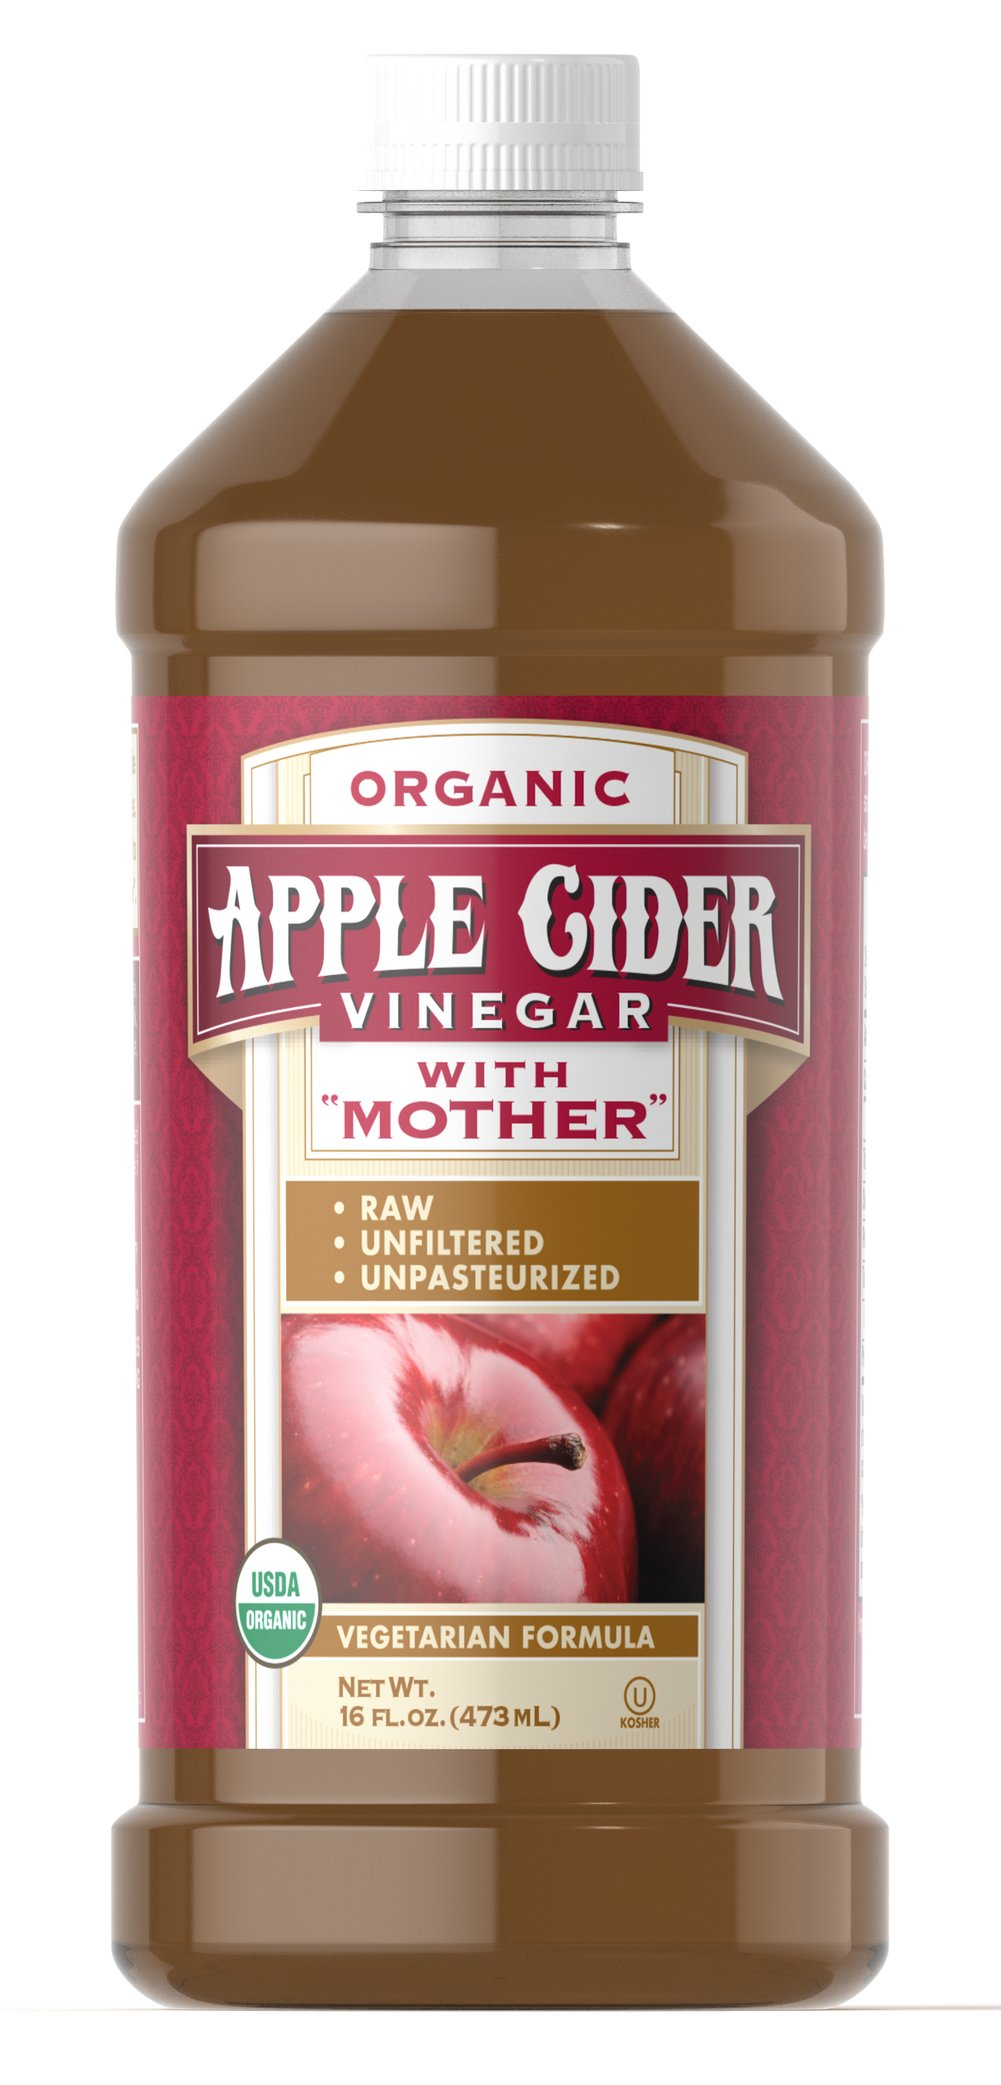 "Organic Apple Cider Vinegar with ""Mother"" <ul><li>Raw</li><li>Unfiltered</li><li>Unpasteurized</li></ul><p>Organic Apple Cider Vinegar is made from certified Organic grown apples.  It is unpasteurized and unfiltered to retain the naturally formed ""Mother"".</p> 16 oz Liquid  $9.99"